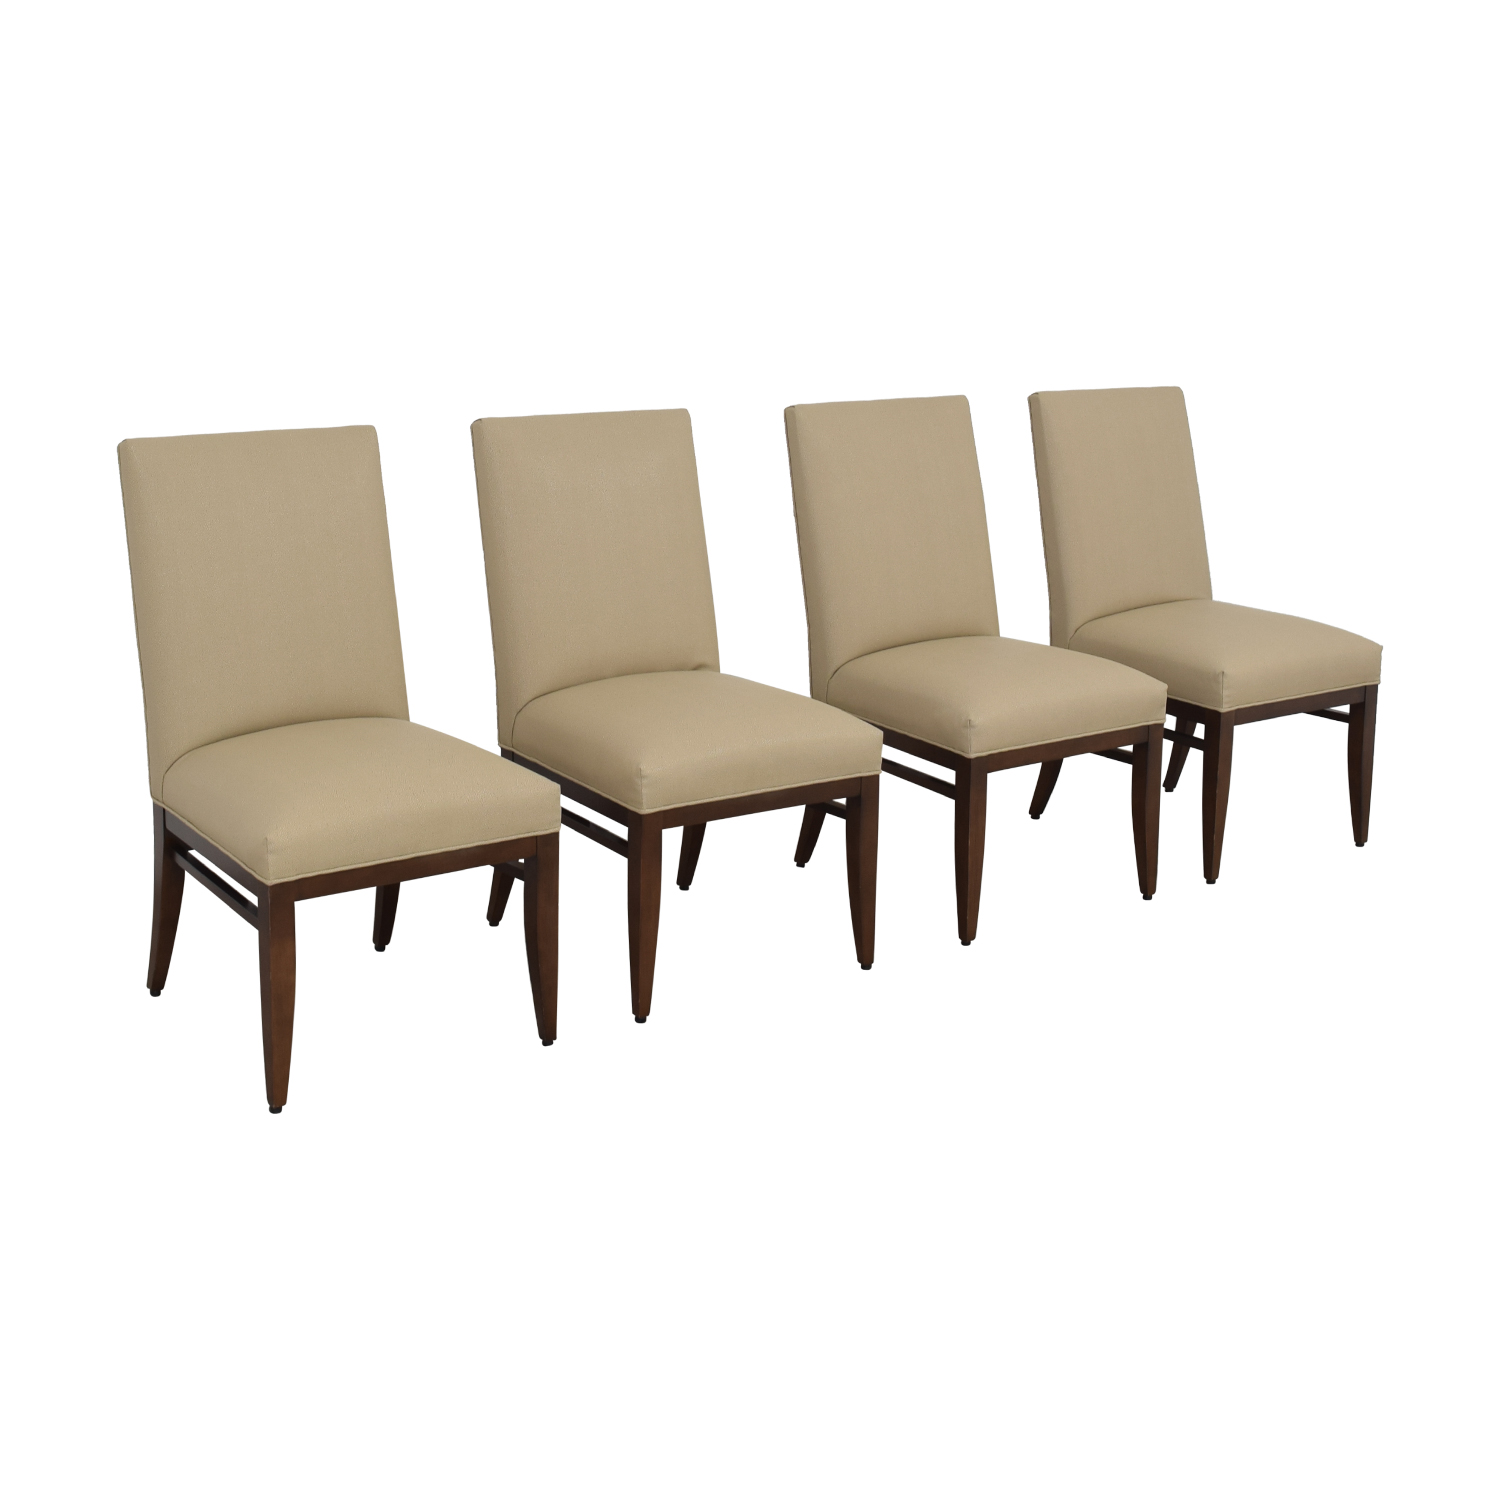 Duralee Kent Upholstered Dining Chairs / Dining Chairs